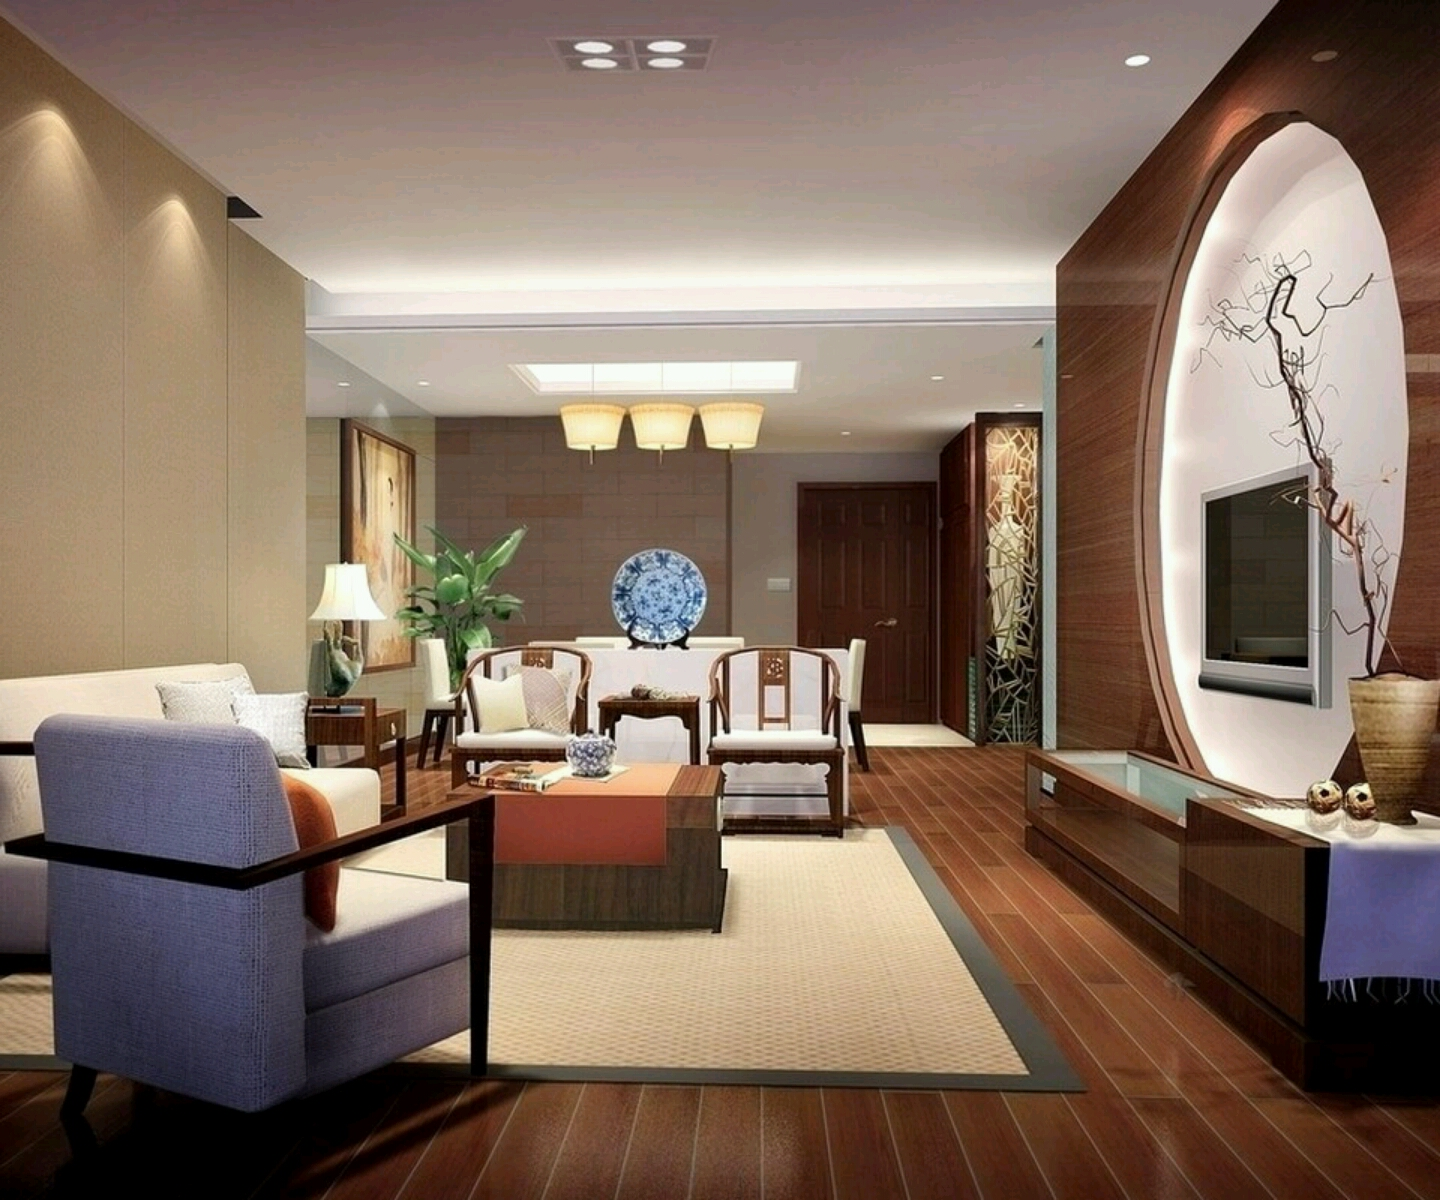 Living Room Interior Design: Luxury Homes Interior Decoration Living Room Designs Ideas